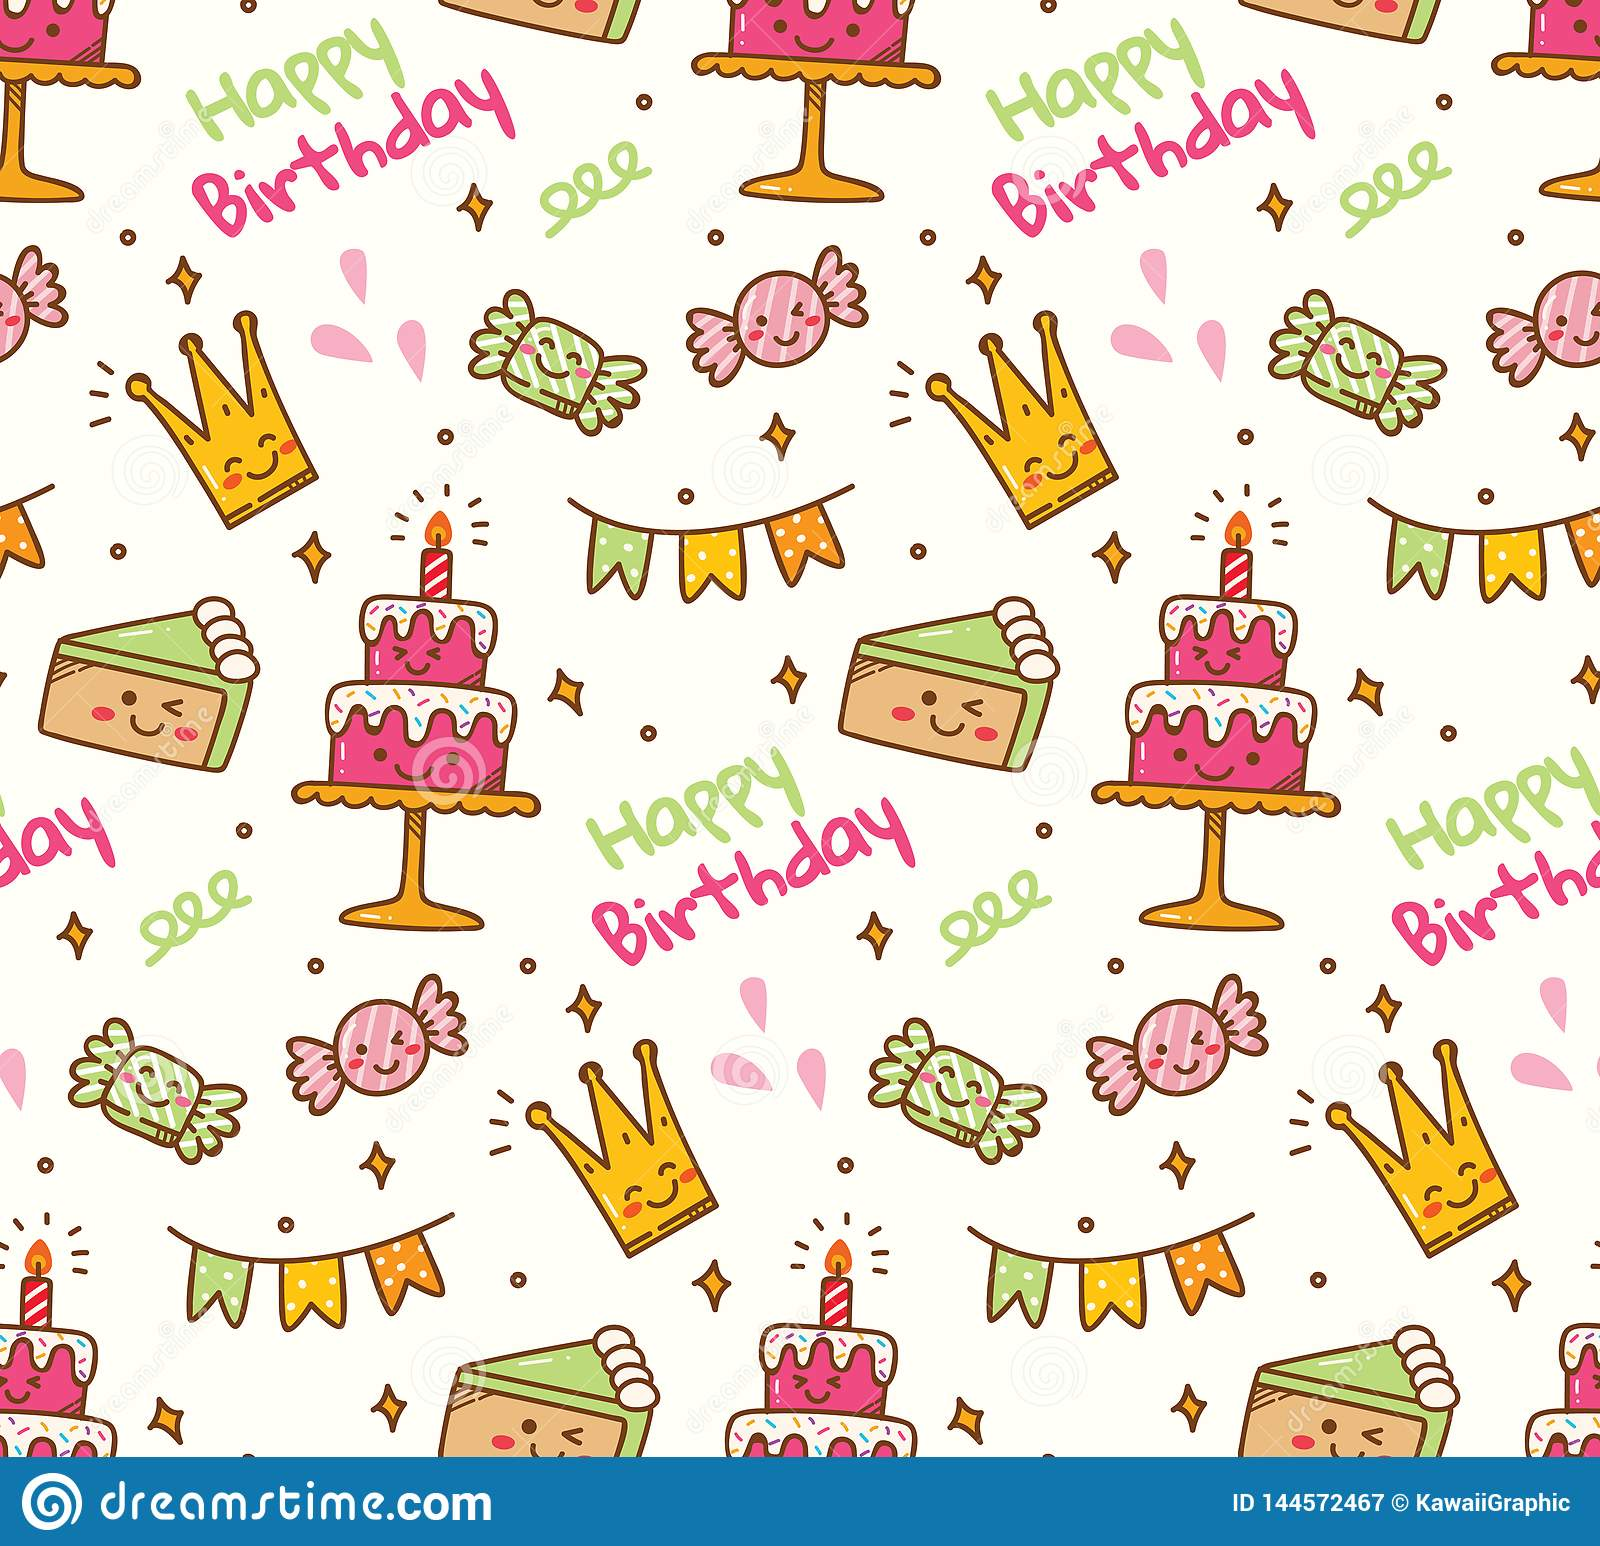 Birthday Doodle Seamless Background With Kawaii Birthday